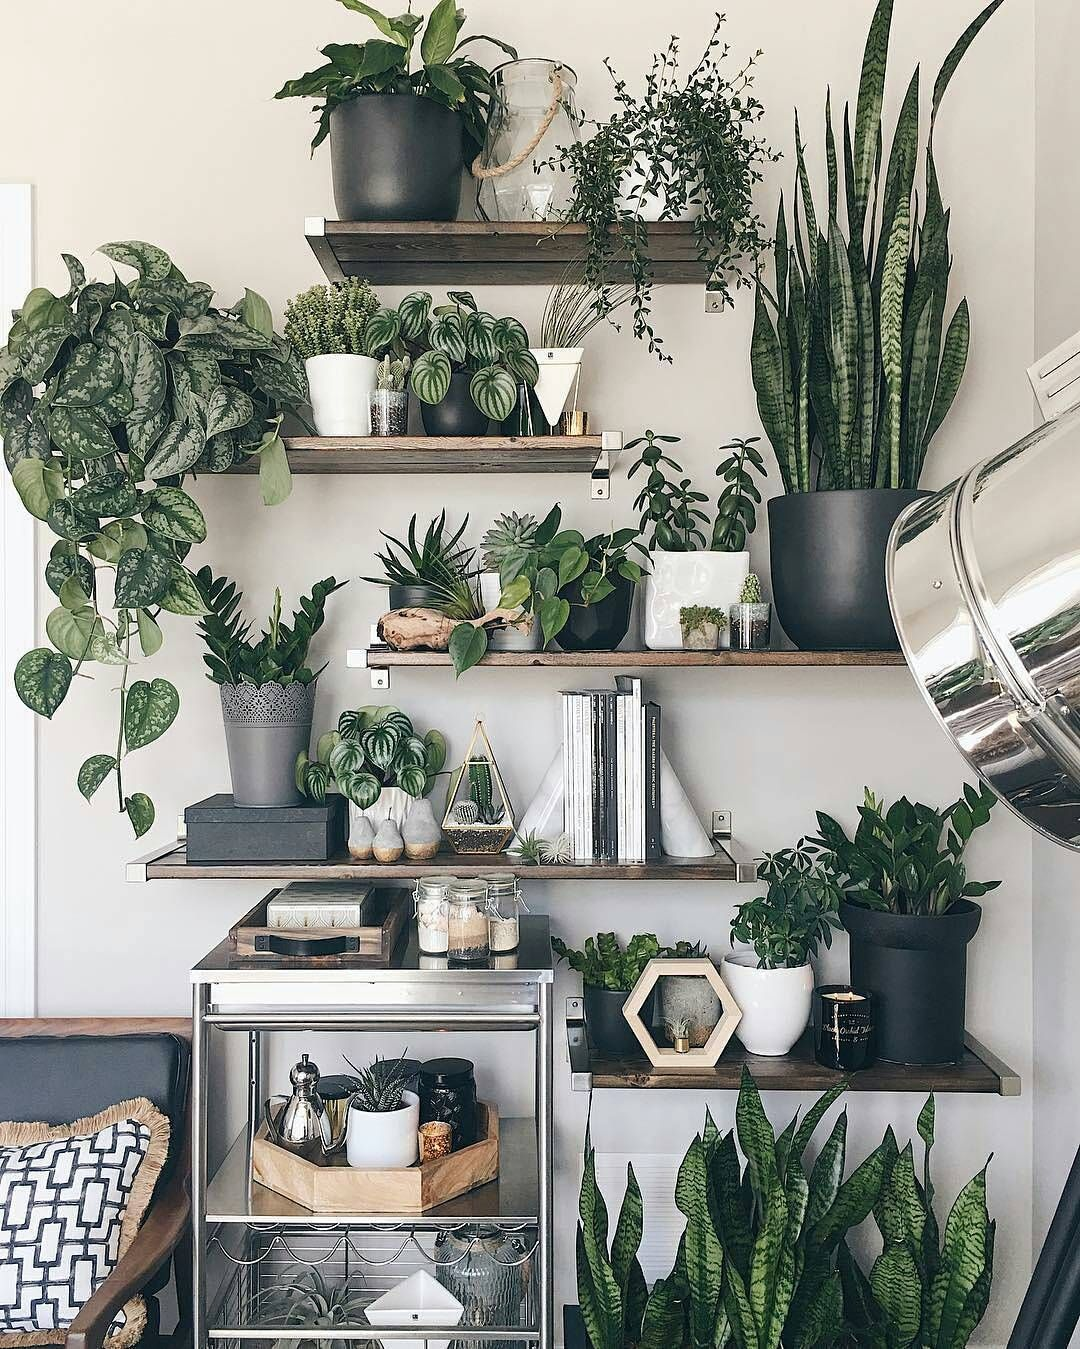 Plant Shelving Indoor Pin By Sasha Zuwolinsky On Decor Room With Plants